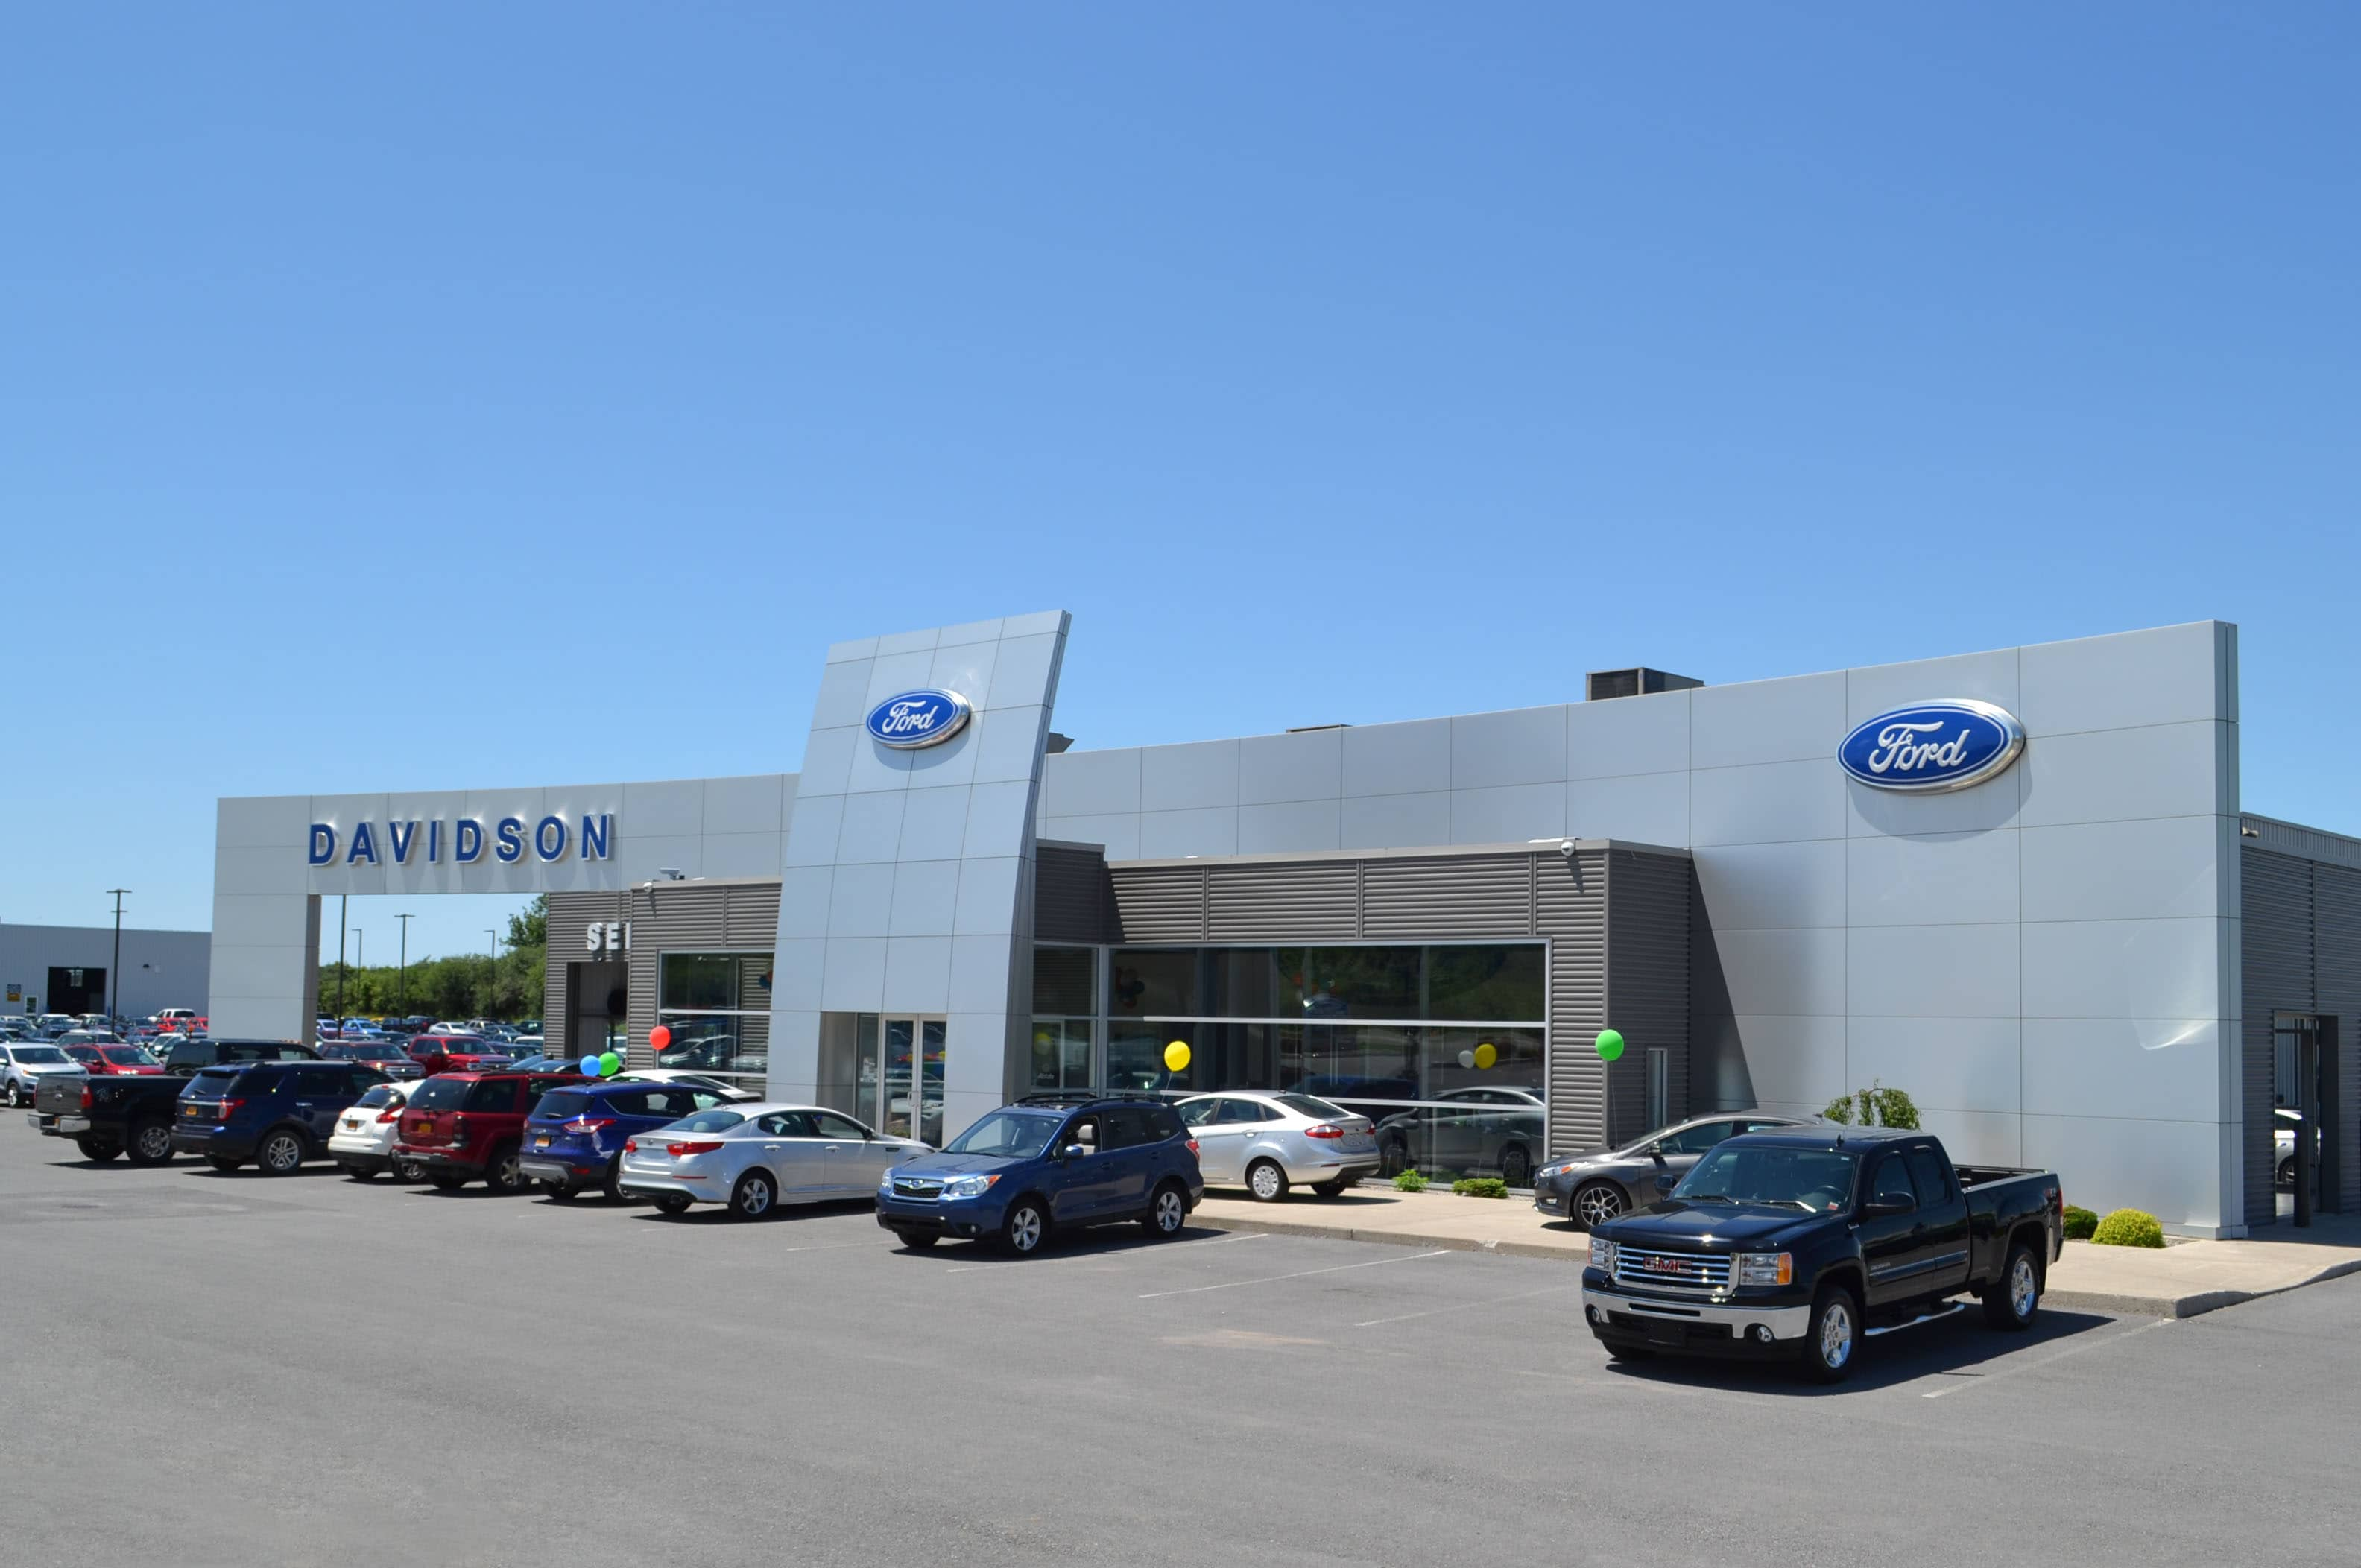 Used Car Dealerships Syracuse Ny >> About Davidson Ford in Watertown | New and Used Ford ...